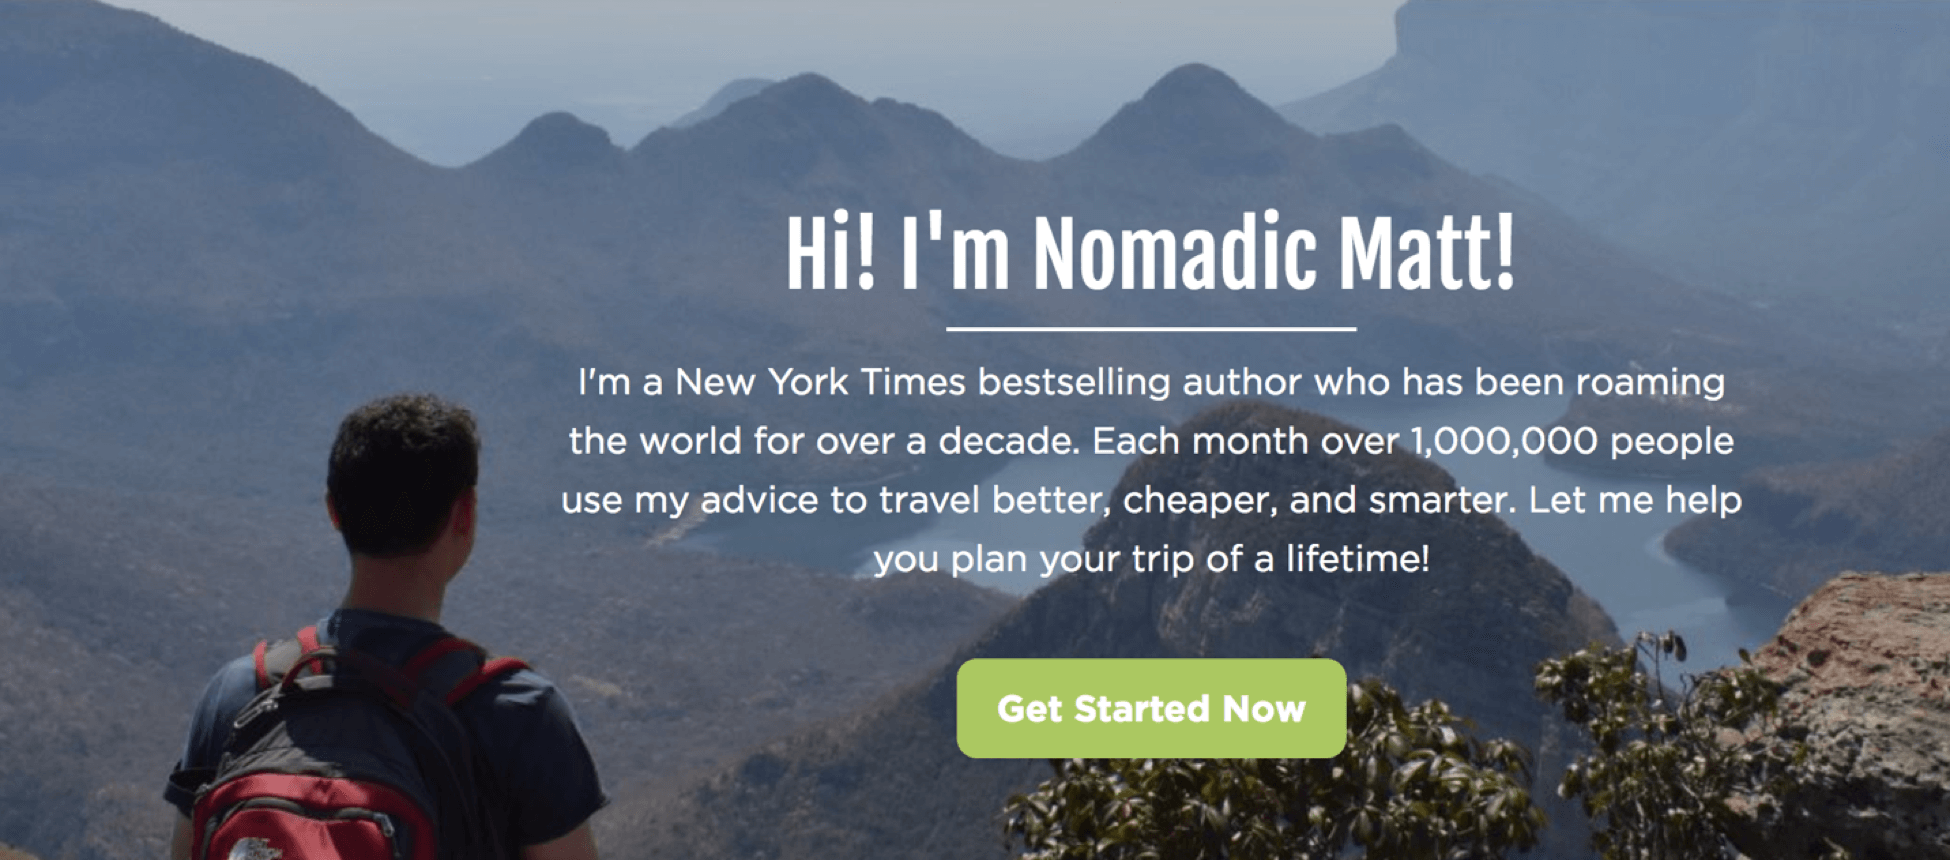 nomadic matt for research for your trip